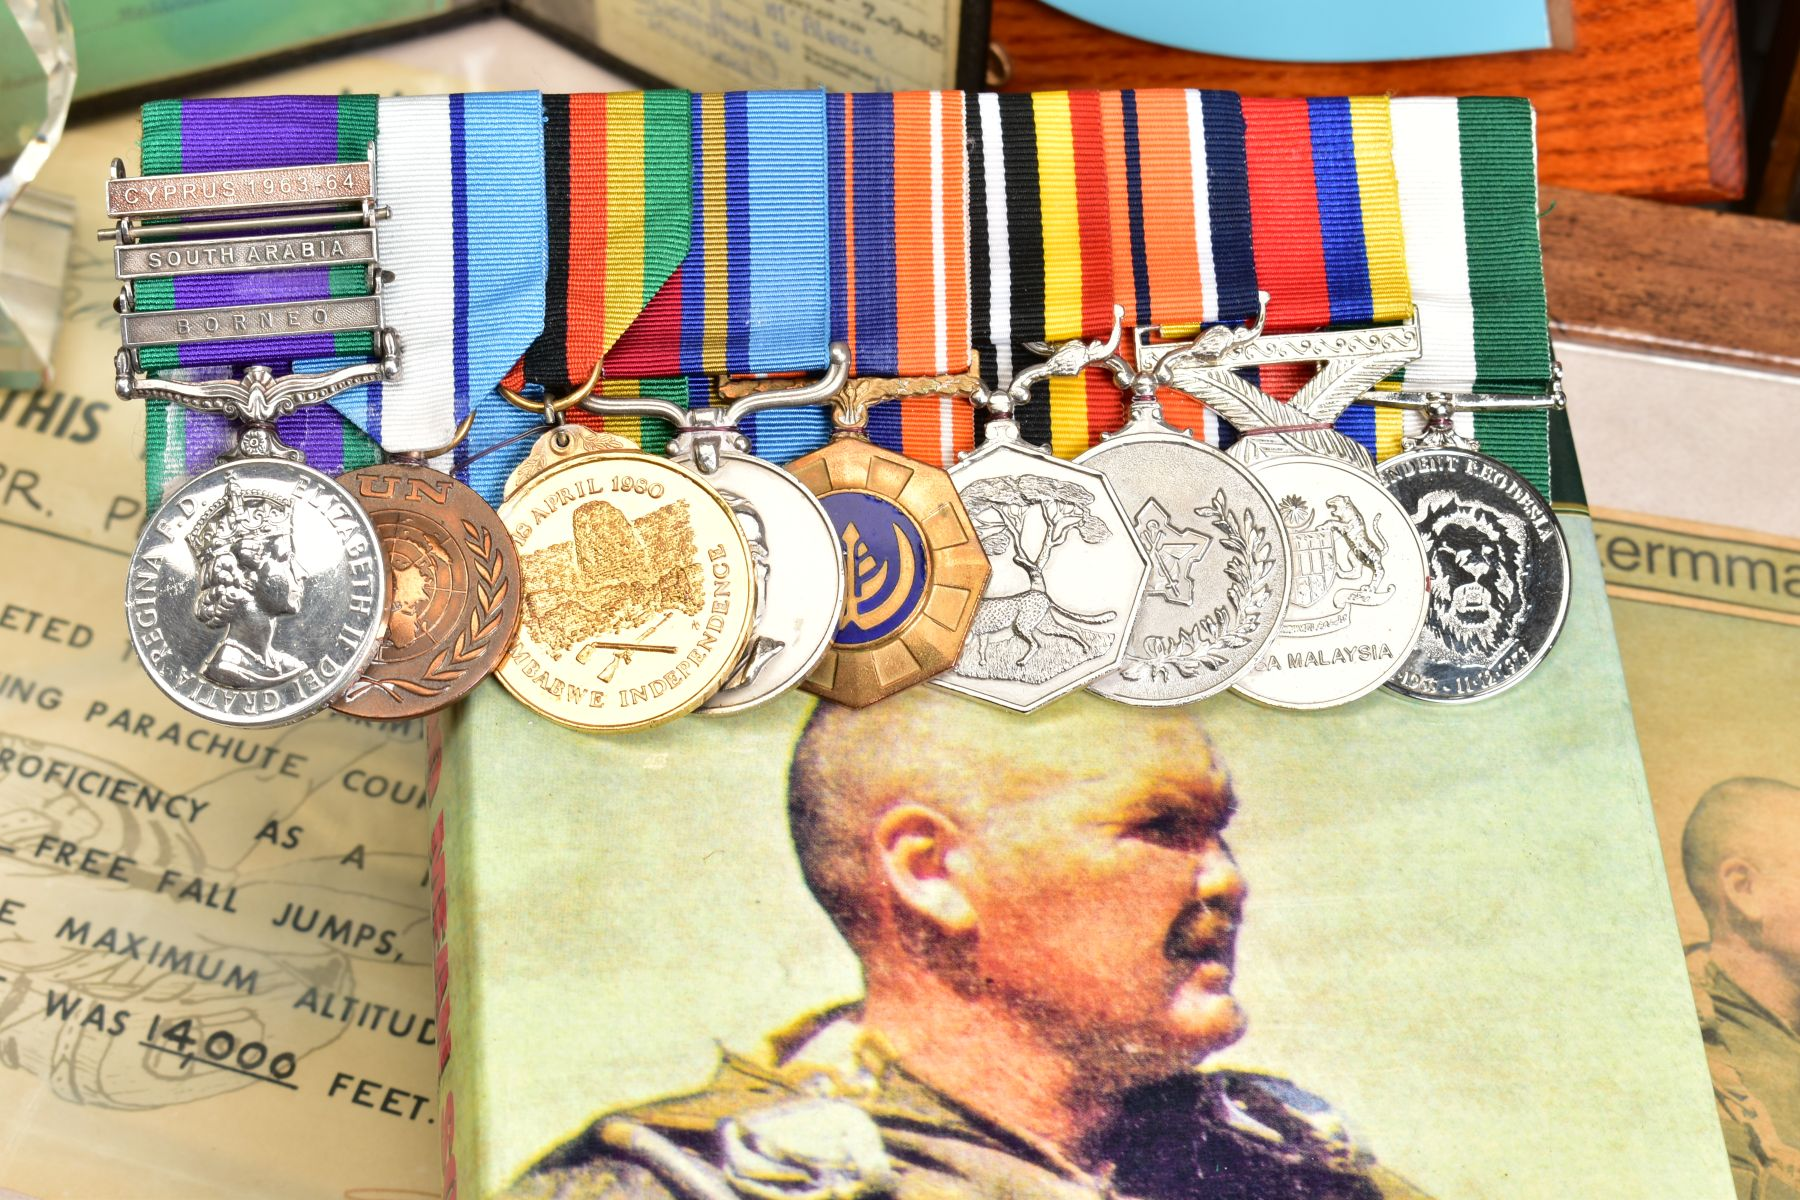 A SUPERB AND ALMOST TOTALLY UNIQUE GROUP OF NINE MEDALS, awarded to a member of the '22 Special - Image 7 of 36